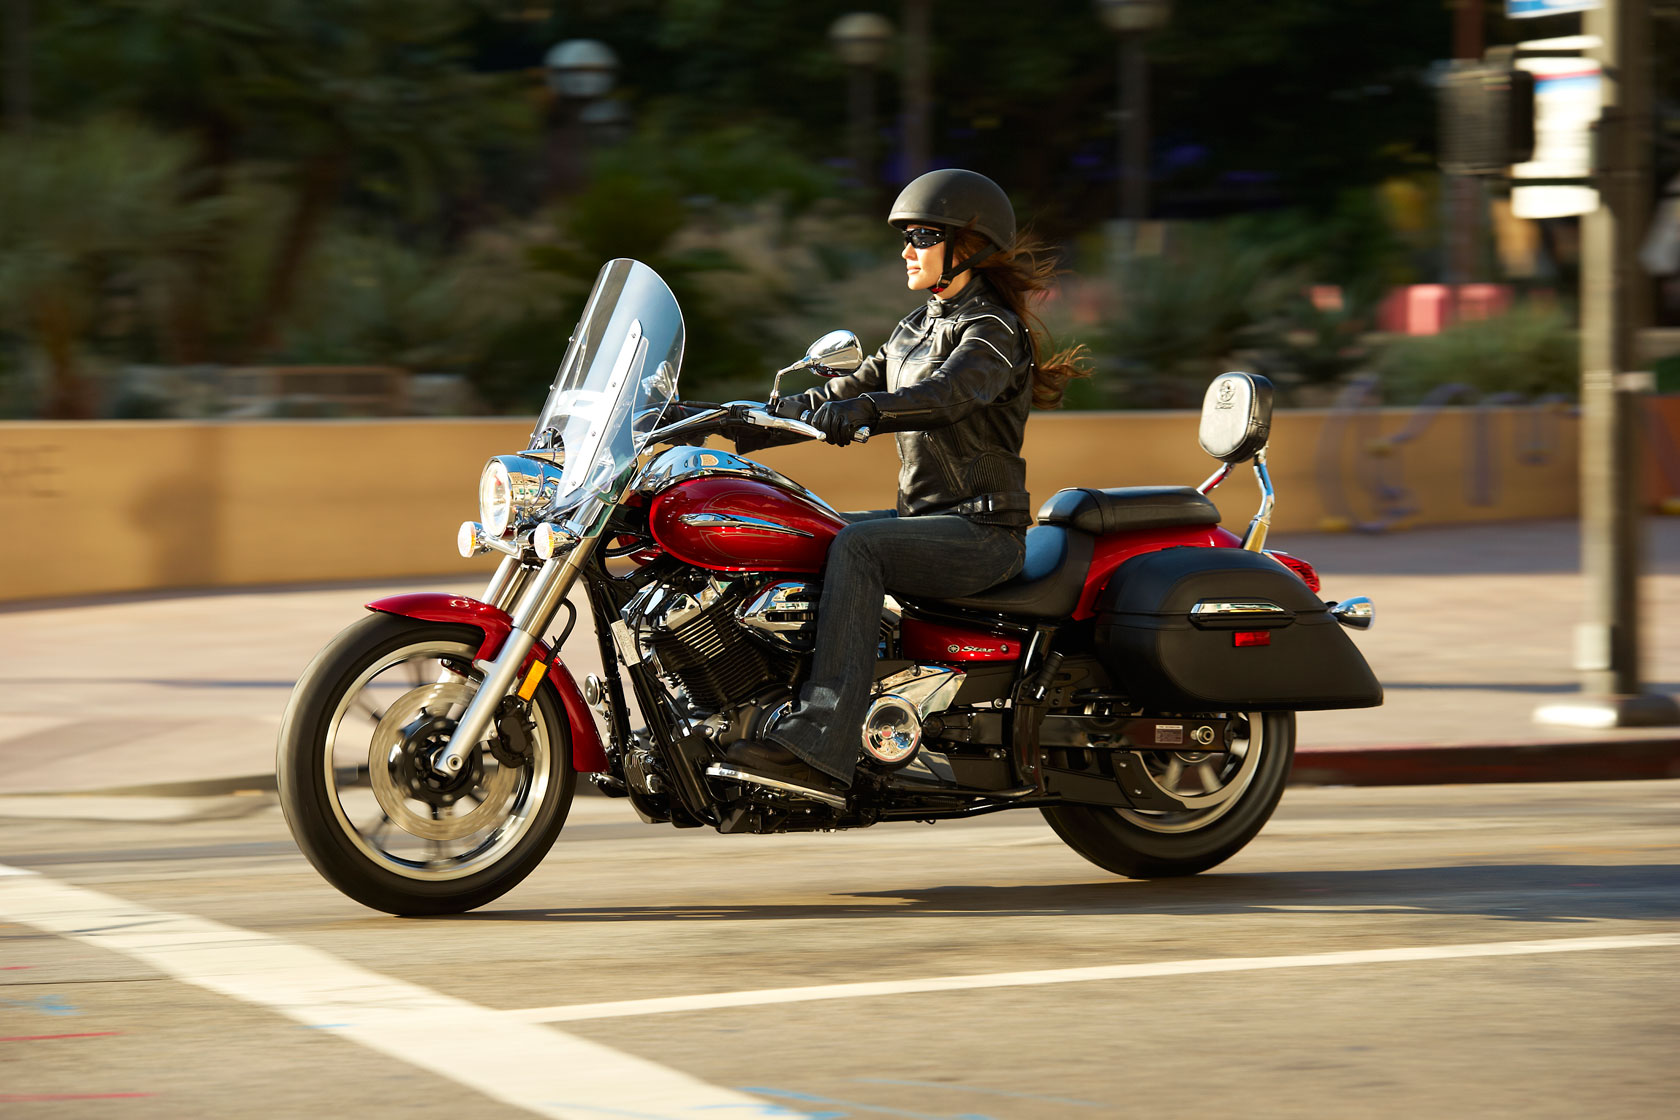 Yamaha V Star 950 Tourer 2010 #11